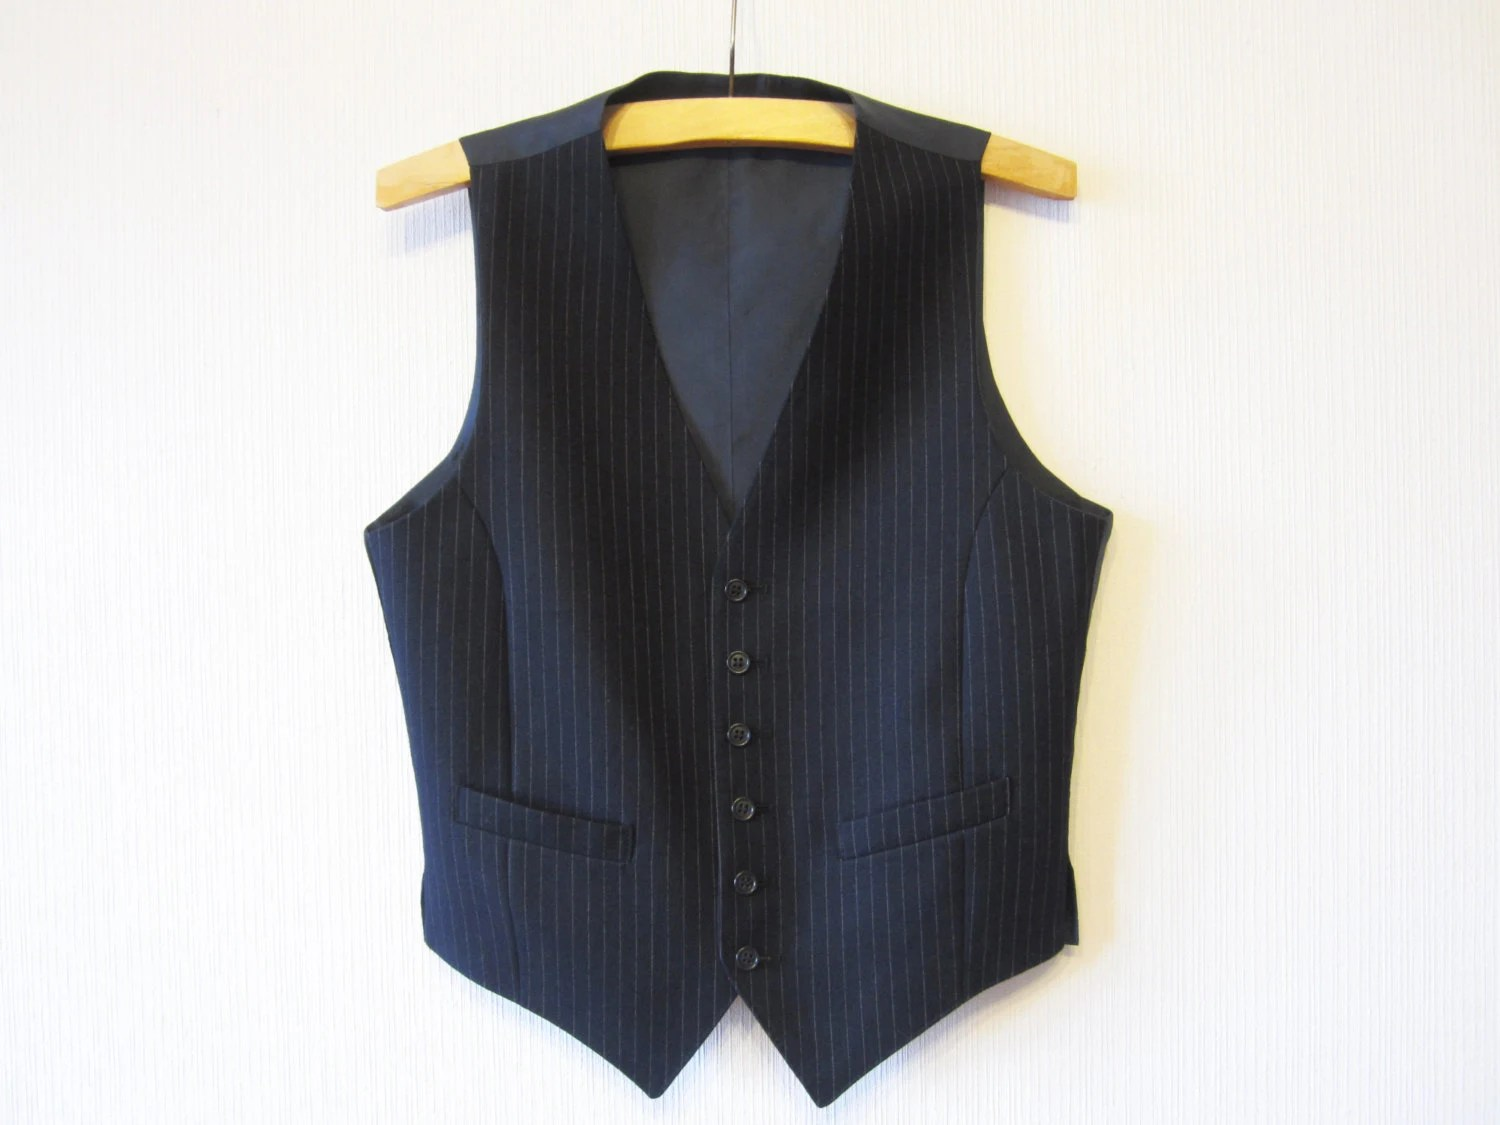 Steampunk Mens Waistcoat Navy Blue Striped Gentlemen's Vest Formal Edwardian Victorian Renaissance Medium - VintageDreamBox